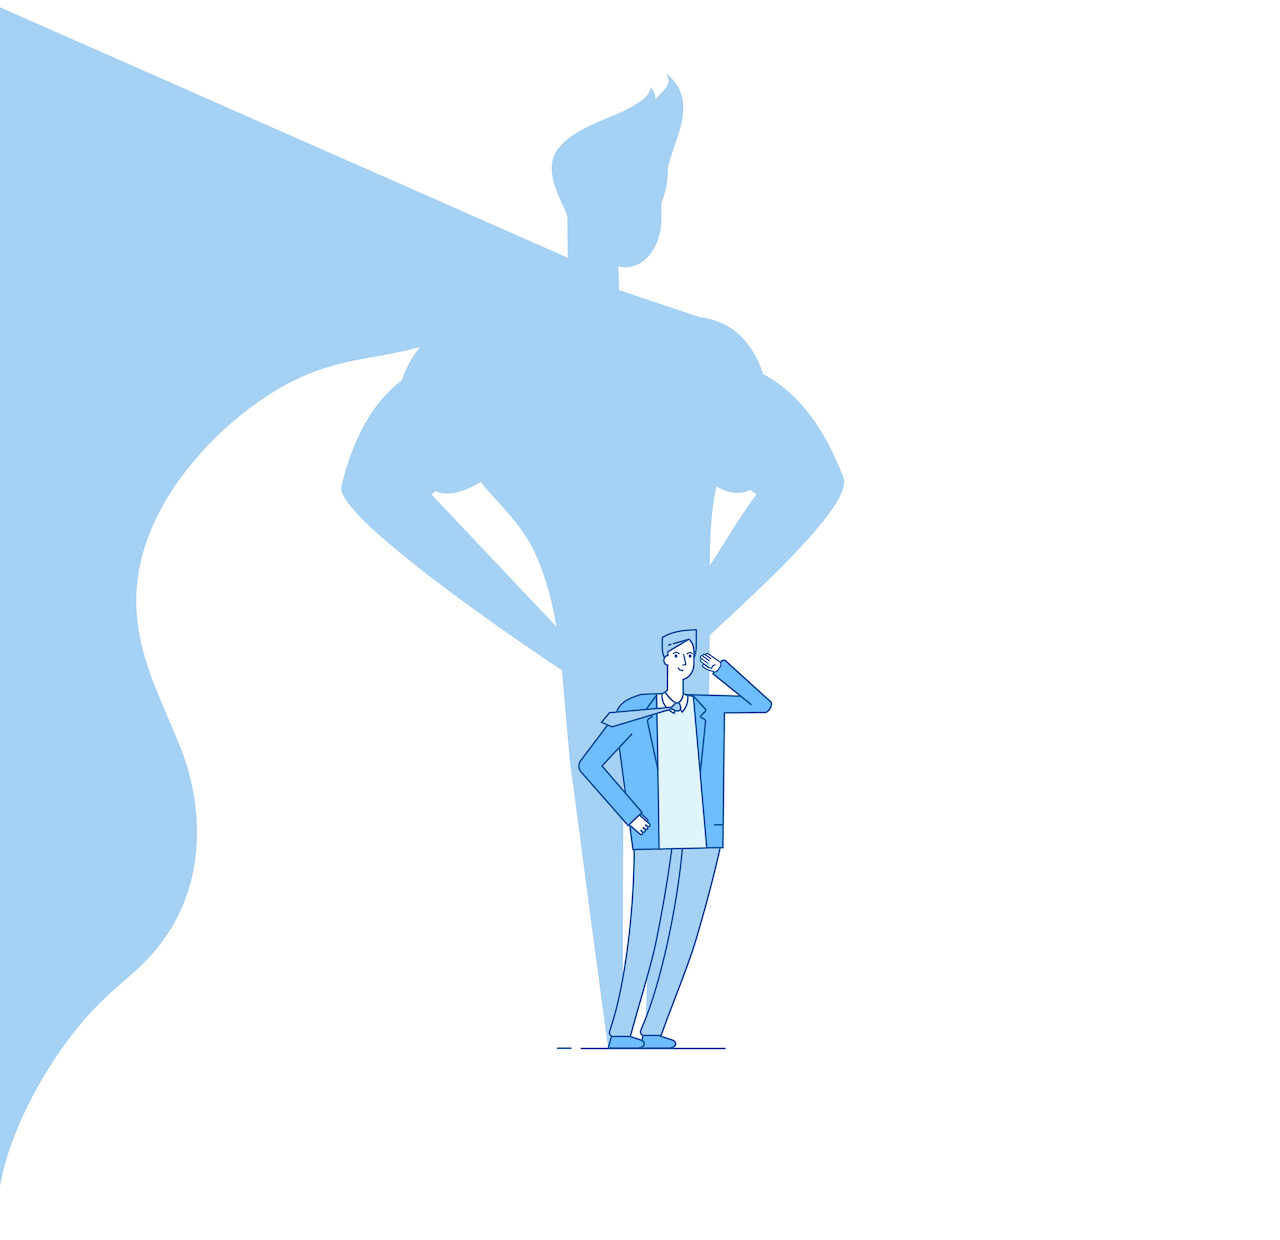 Businessman with superhero shadow. Strong man leader business power, ambition and success vector motivation concept